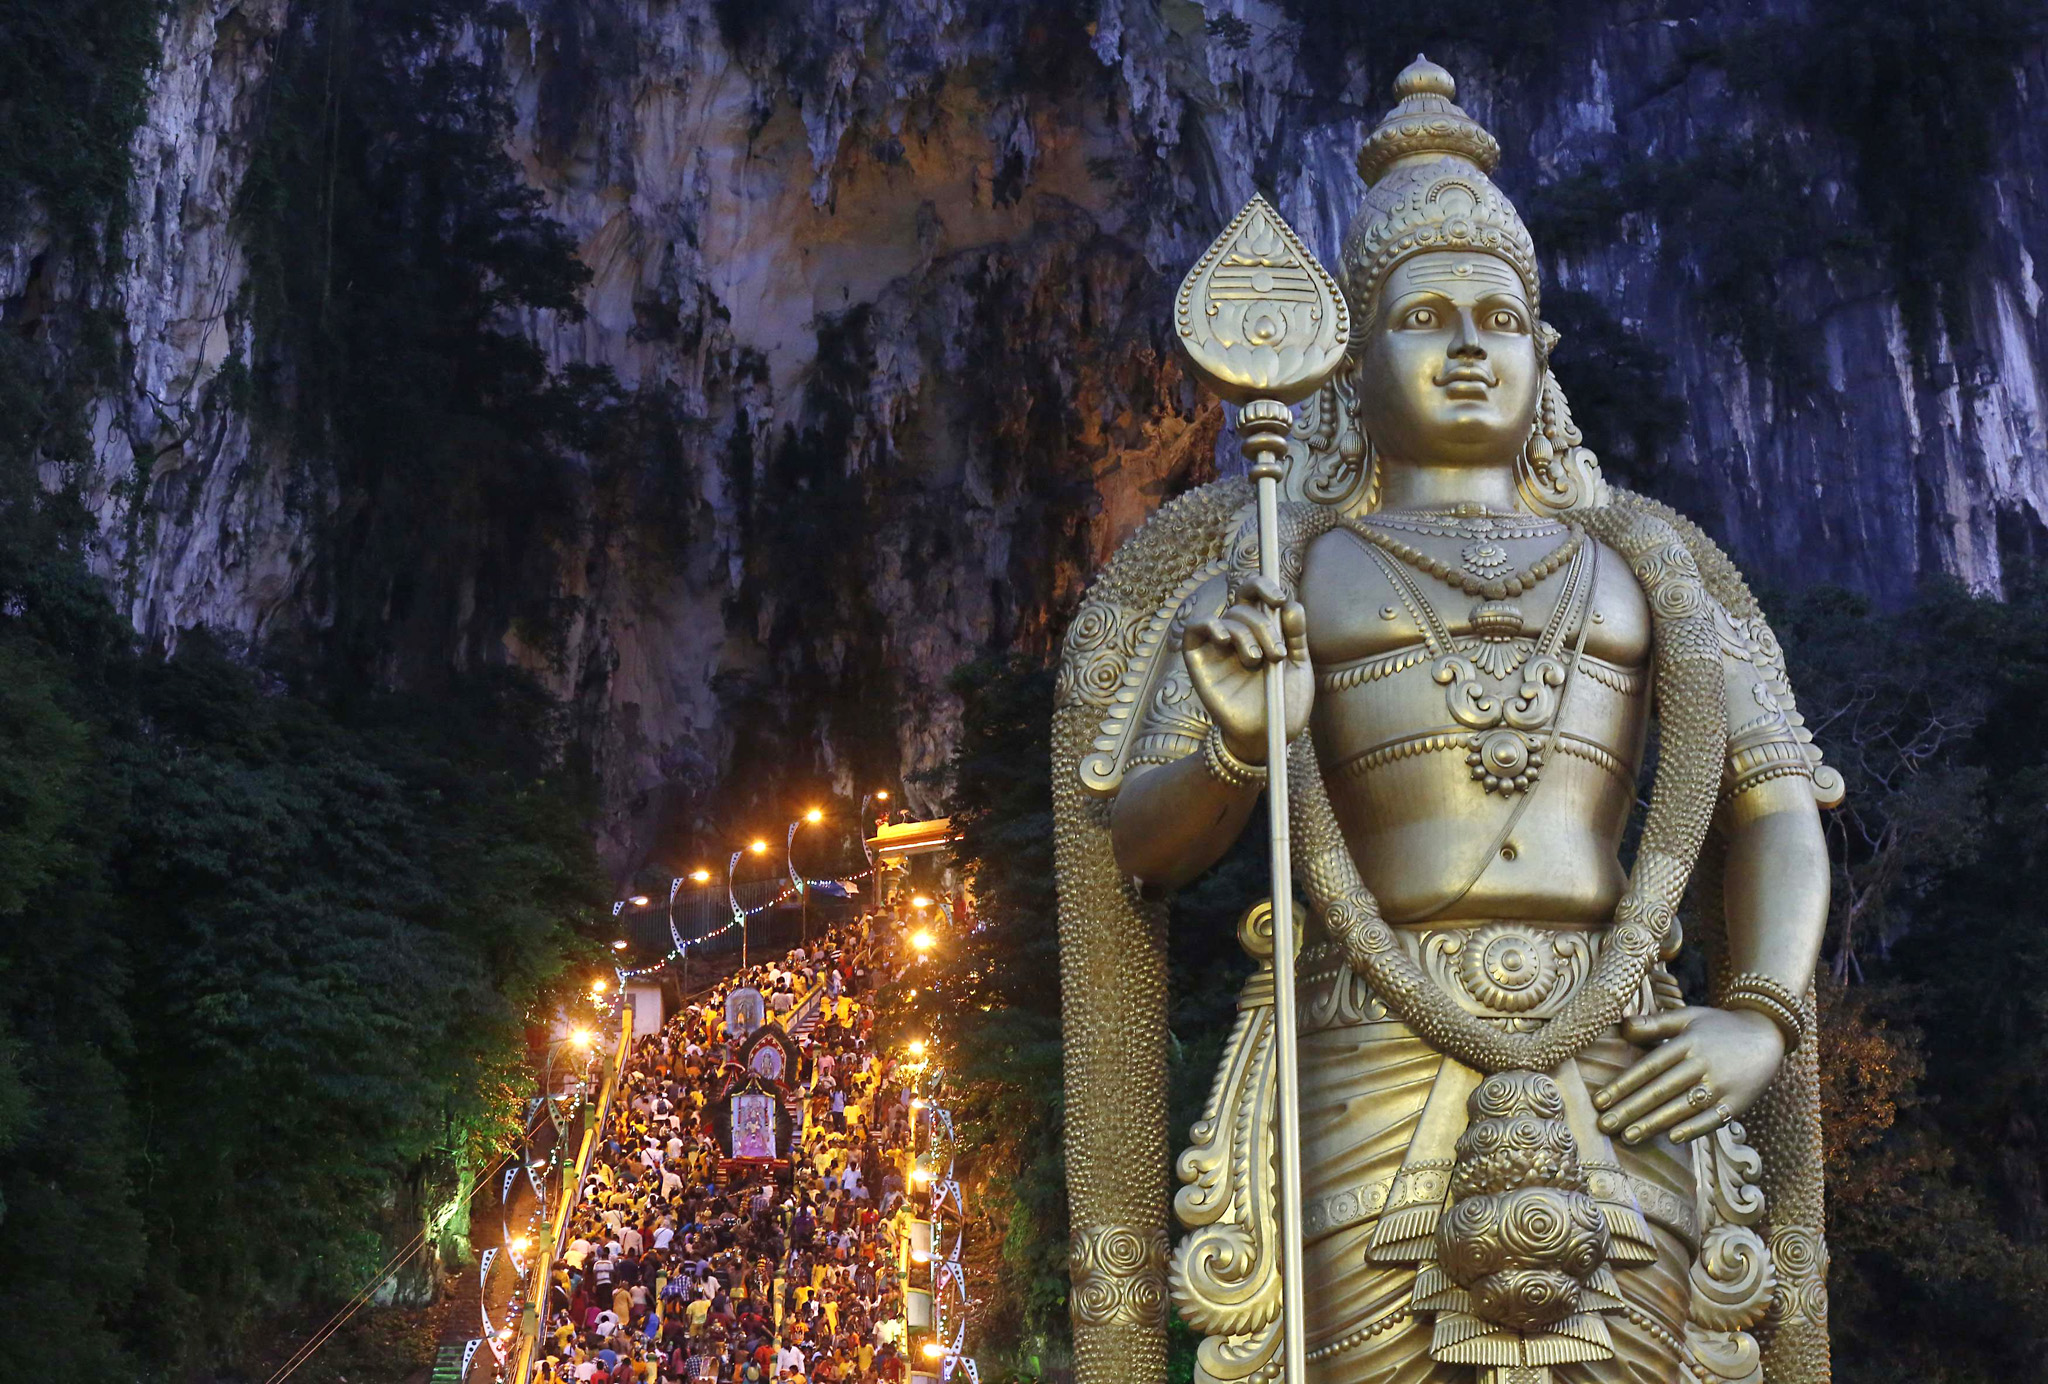 Hindu devotees climb the steps to Batu Caves temple during Thaipusam in Kuala Lumpur...Hindu devotees climb the steps to Batu Caves temple during Thaipusam in Kuala Lumpur February 3, 2015. Hindu devotees across Malaysia on Tuesday celebrated Thaipusam, a religious celebration dedicated to the Hindu deity Lord Murugan. Piercing various parts of their body with silver skewers, devotees carry often large contraptions known as Kavadi, thereby taking on a physical burden through which the devotees implore for help from Murugan. Devotees also fulfill vows by carrying milk-filled pots up the stairs to the cave temple. REUTERS/Olivia Harris (MALAYSIA - Tags: SOCIETY RELIGION TPX IMAGES OF THE DAY)